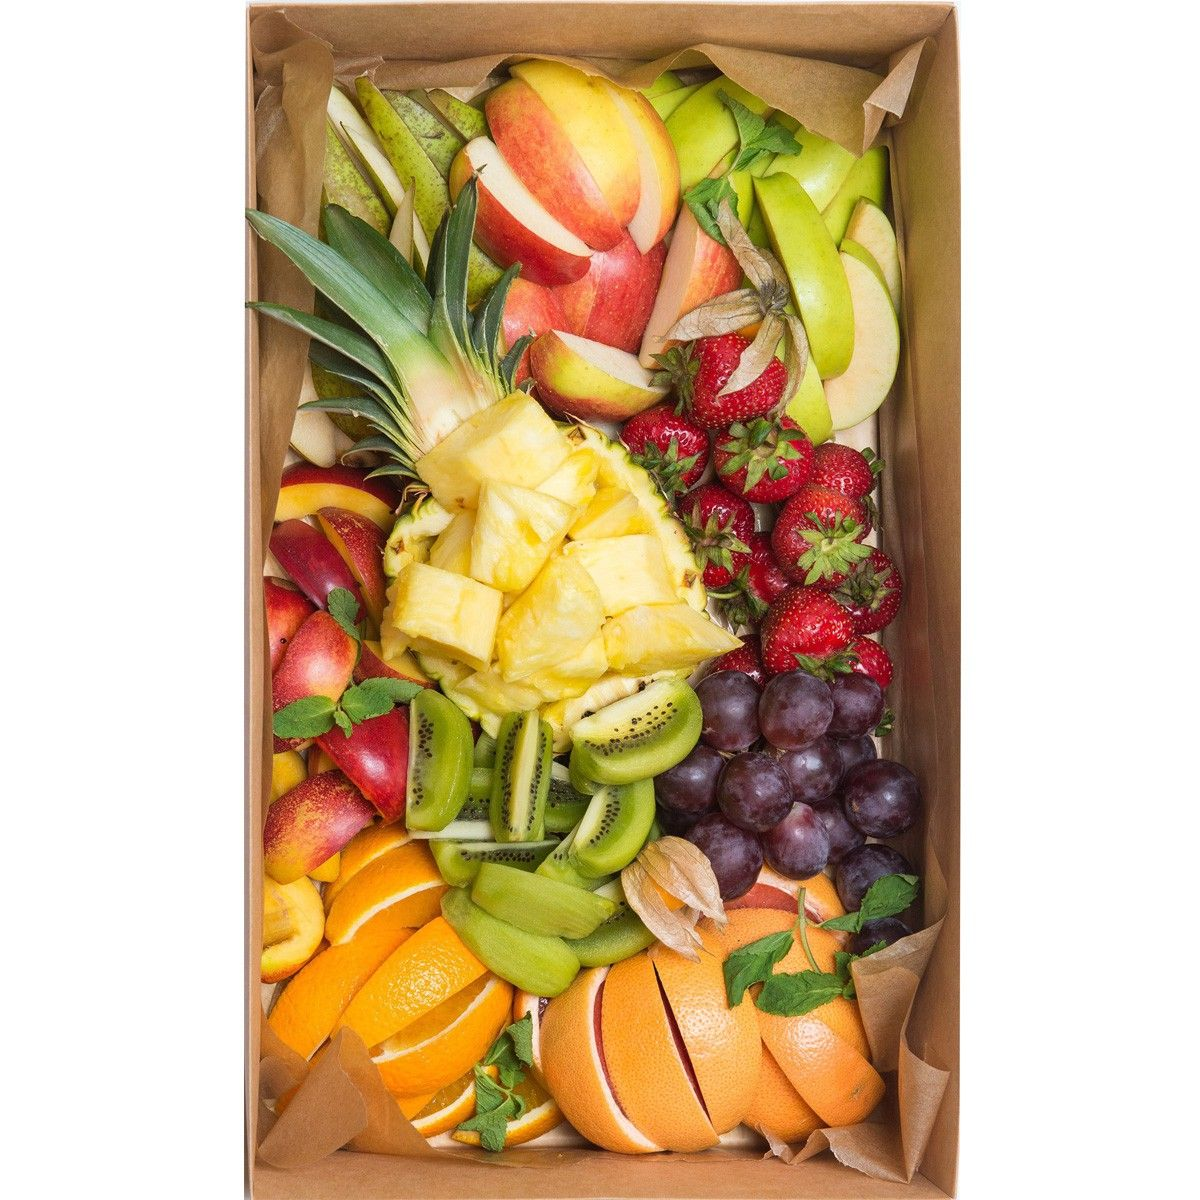 Fruit big box: 1 299 грн. фото 1